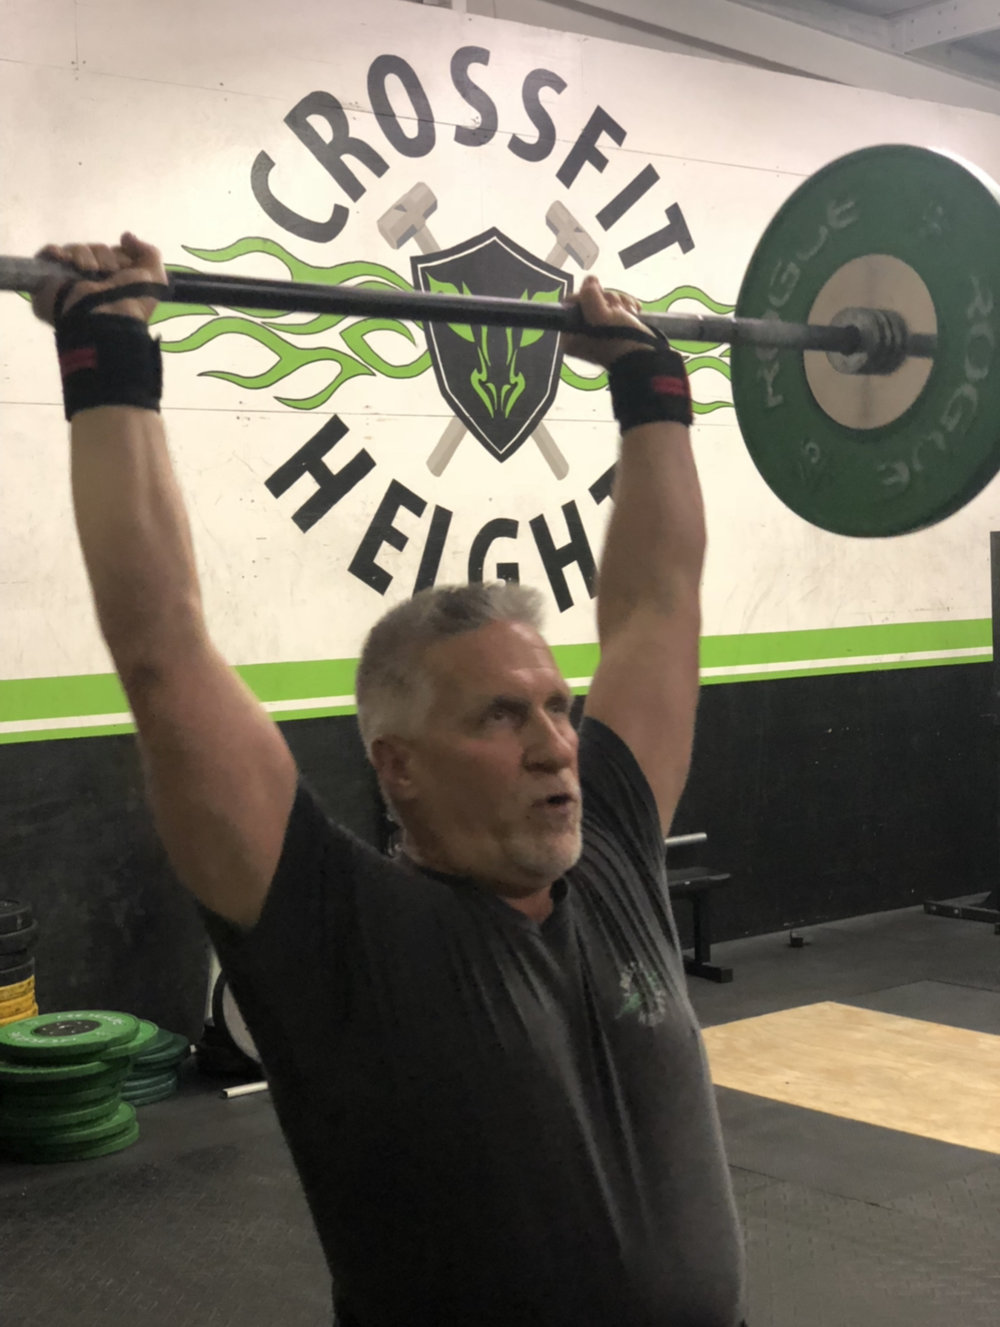 Robert is CrossFit Heights oldest member.  Not because he just turned 60, but because he started crossfitting with us in 2009!!!